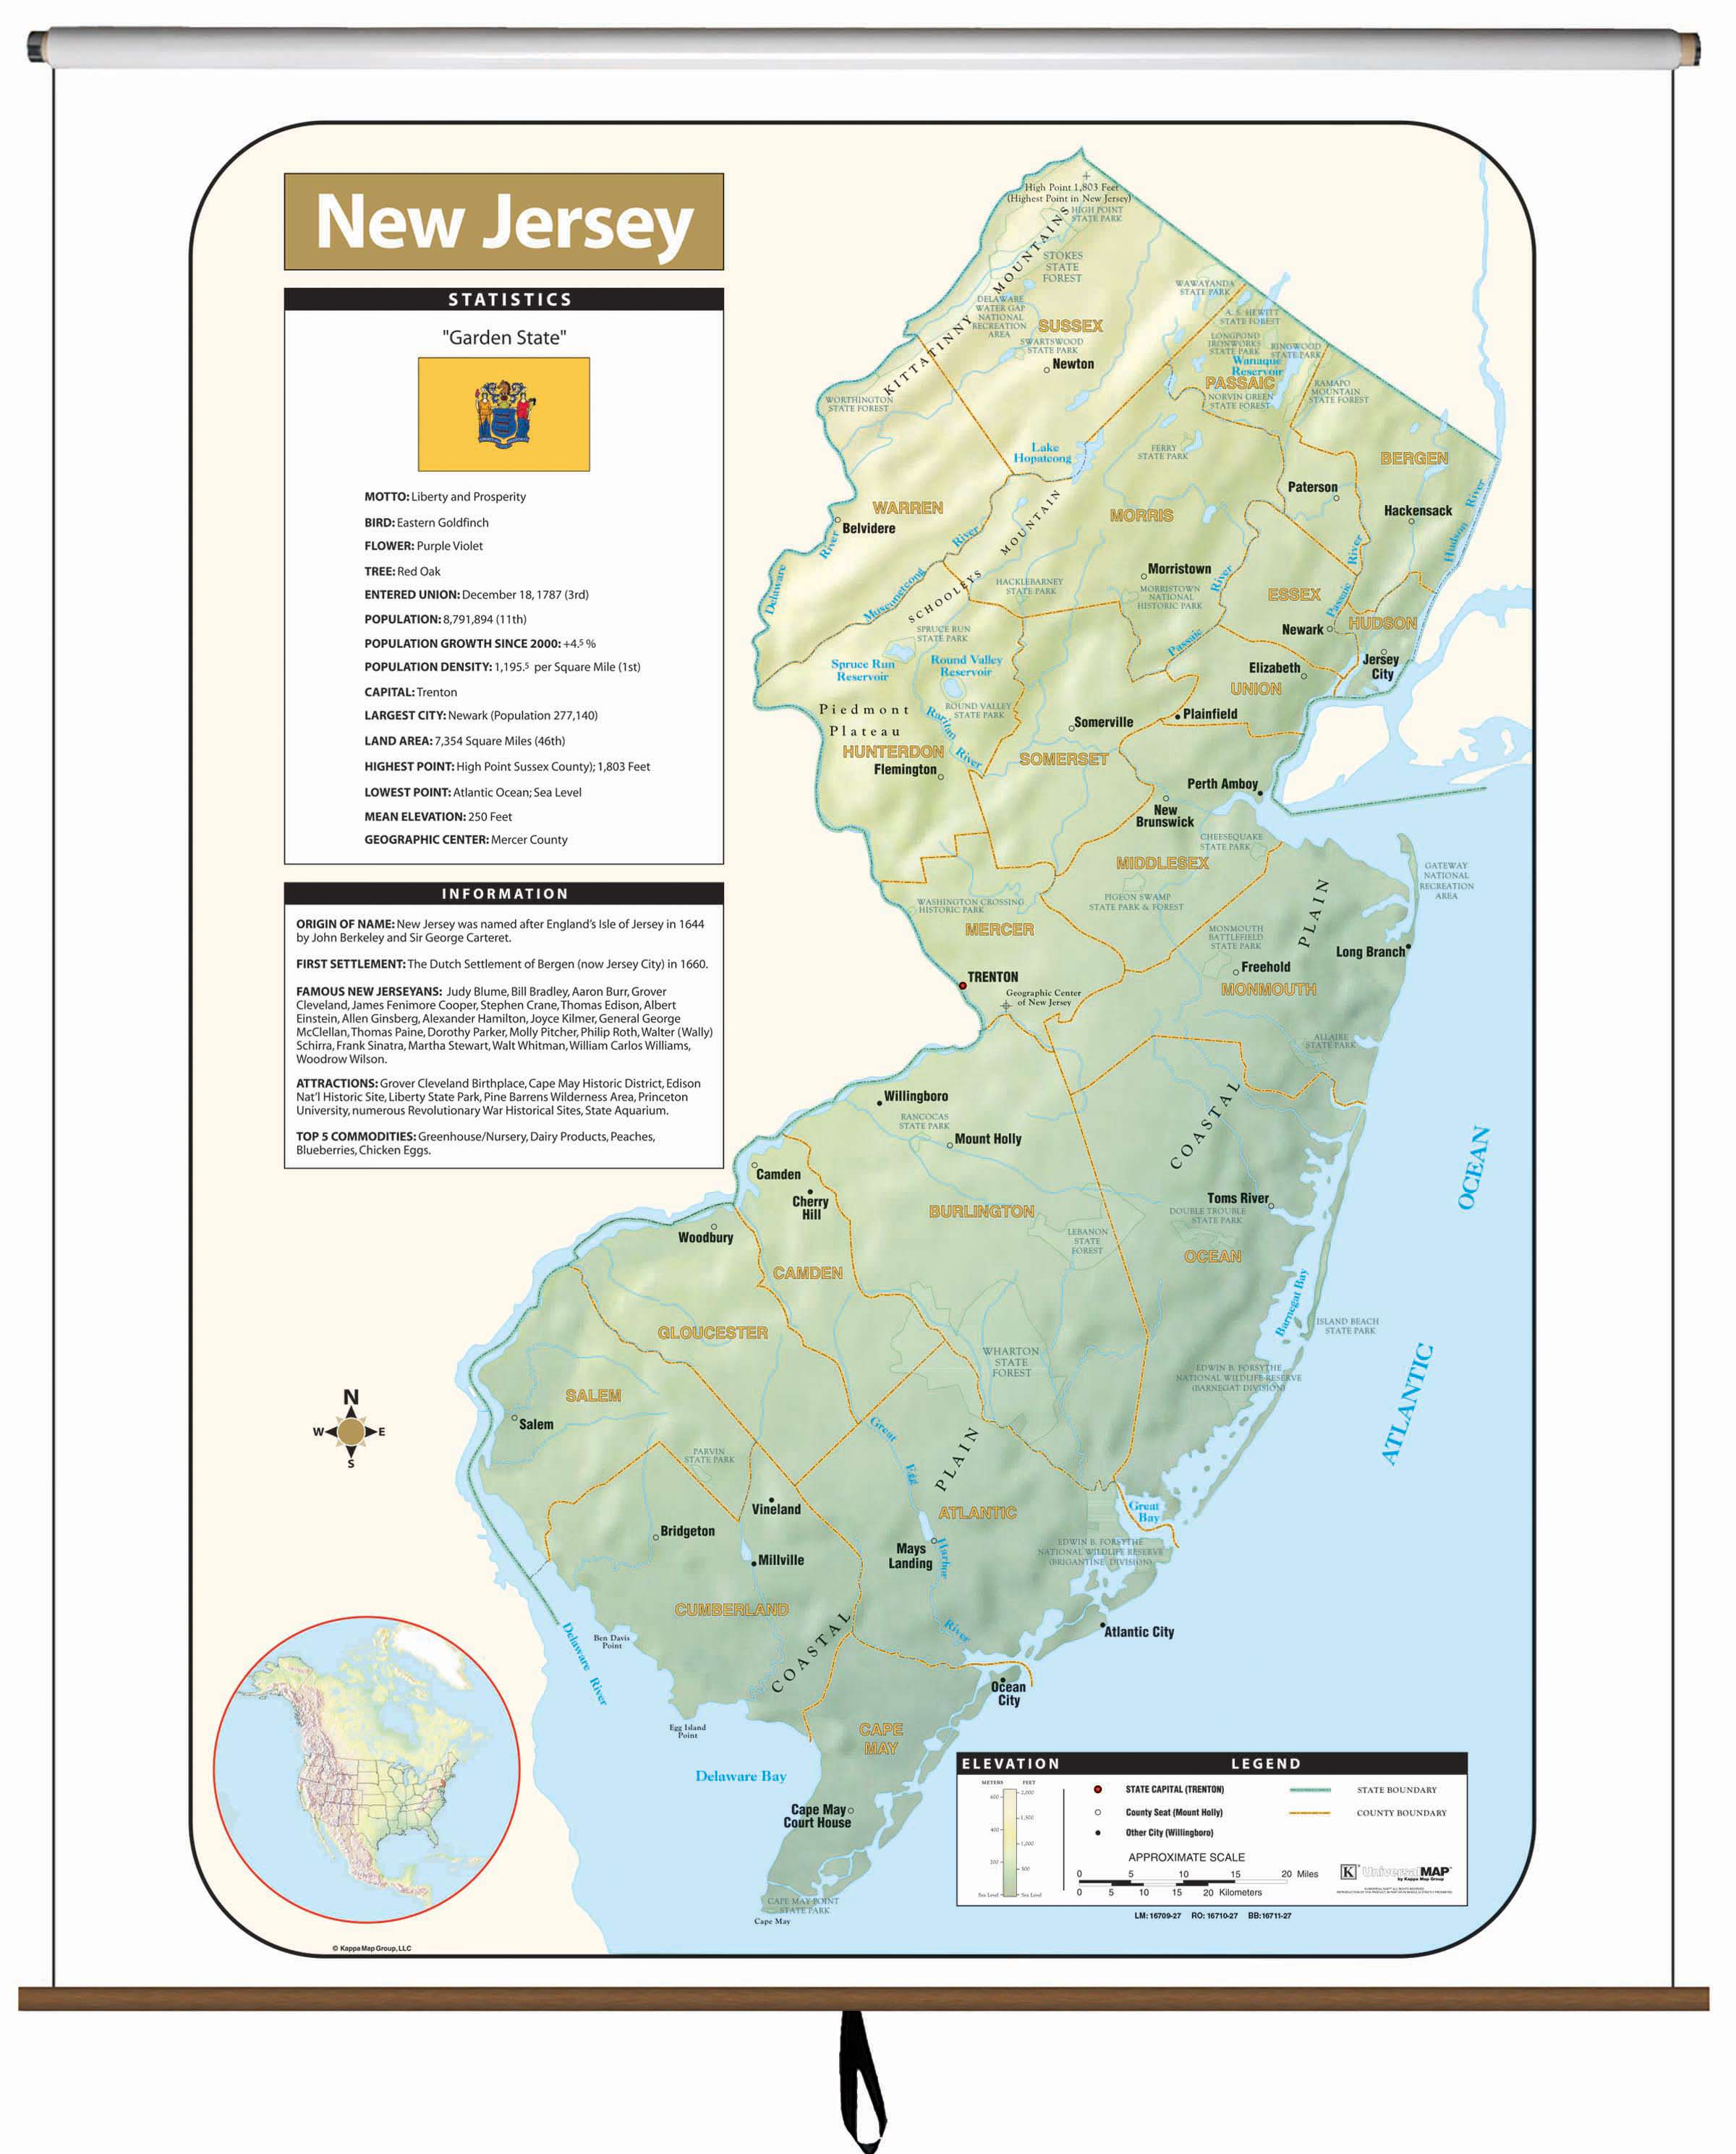 New Jersey Large Scale Shaded Relief Wall Map on Roller – KAPPA MAP ...